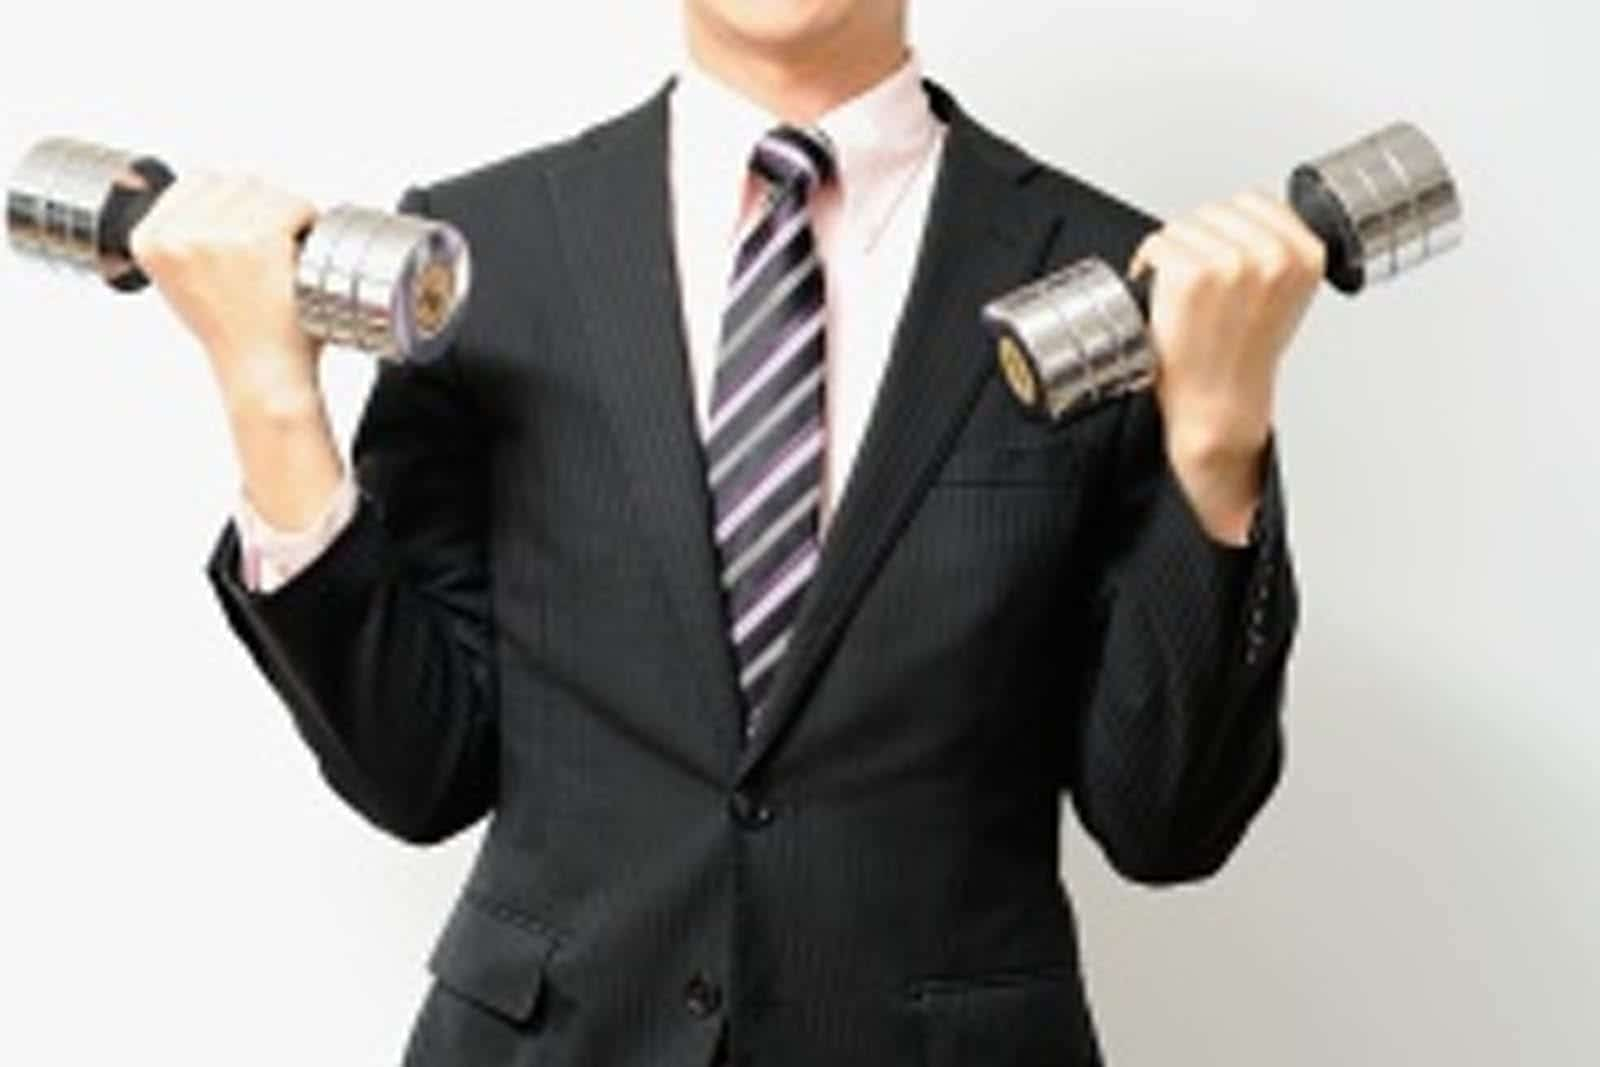 man in a business suit holding weights